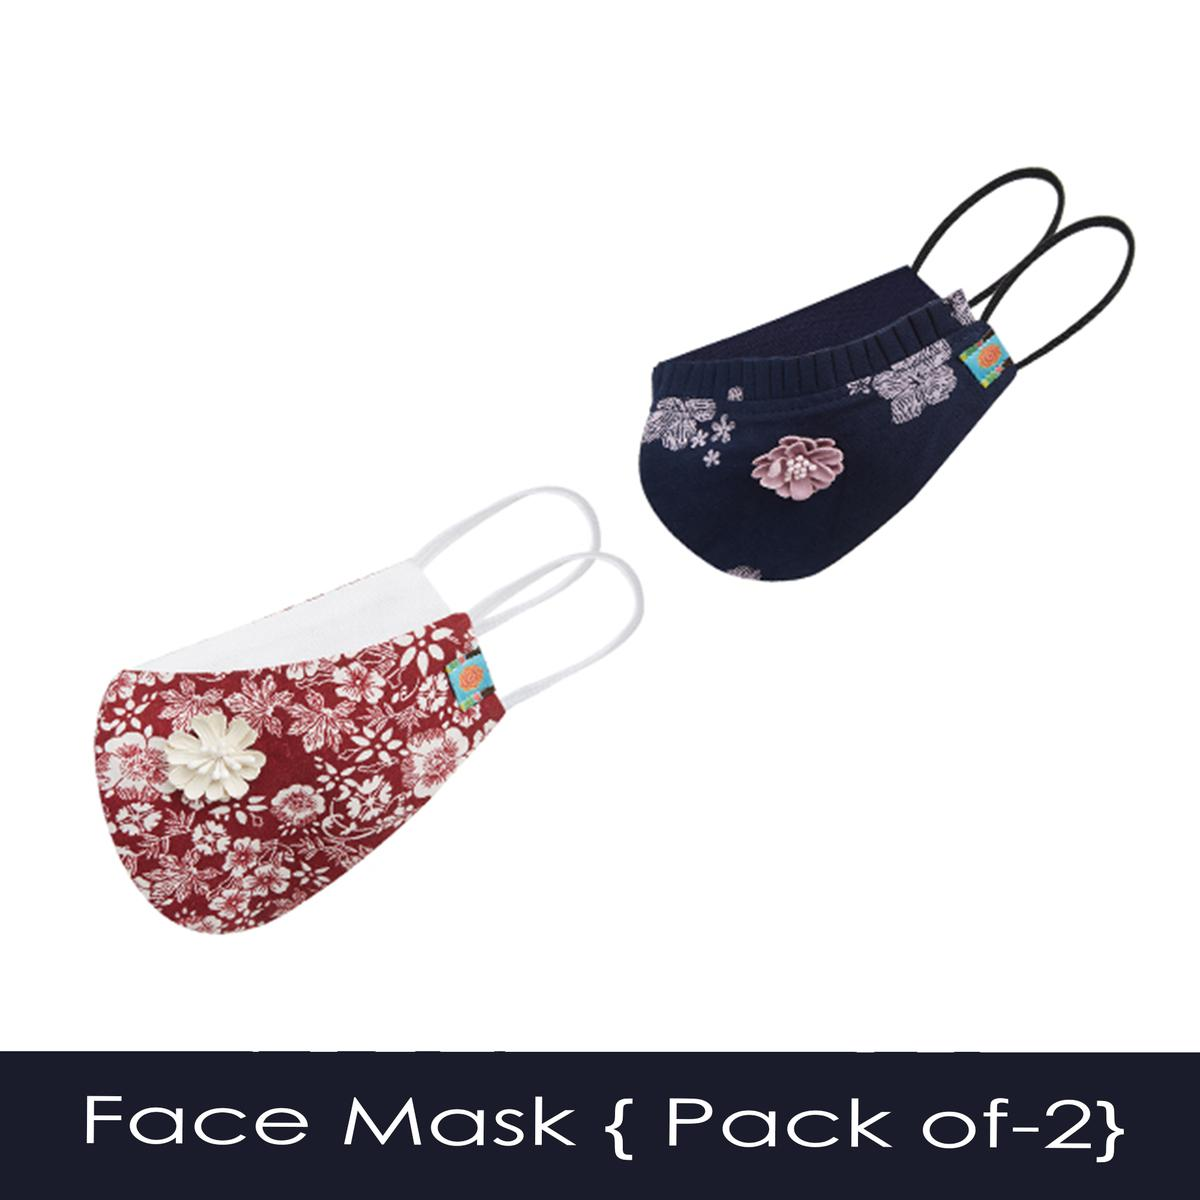 Powderfly Girls Soft Petals Cotton Face Cover - Pack of 2